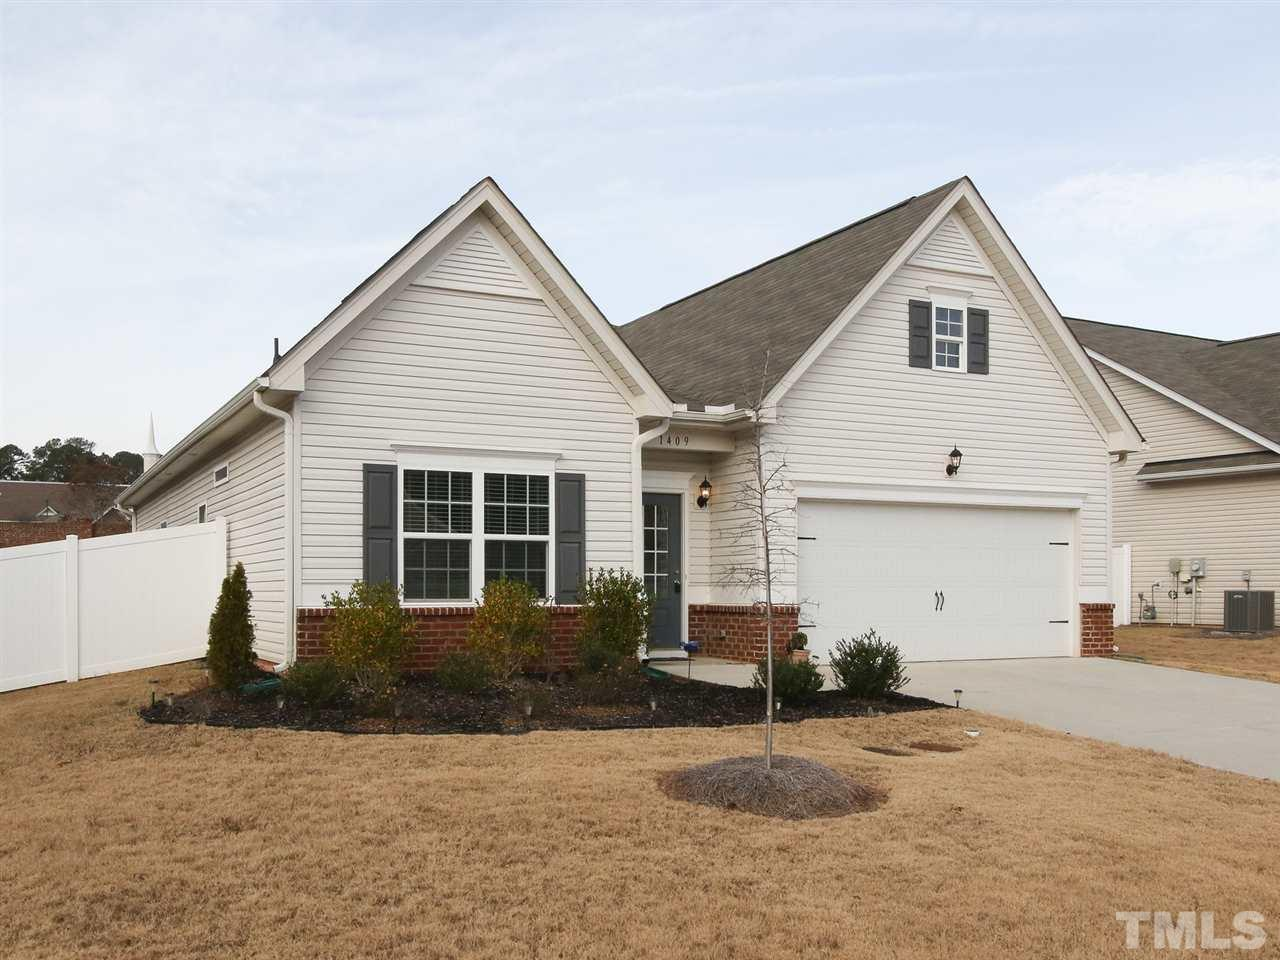 1409 Abercorn Lane Chapel Hill Home Listings - RE/MAX Winning Edge North Carolina Real Estate